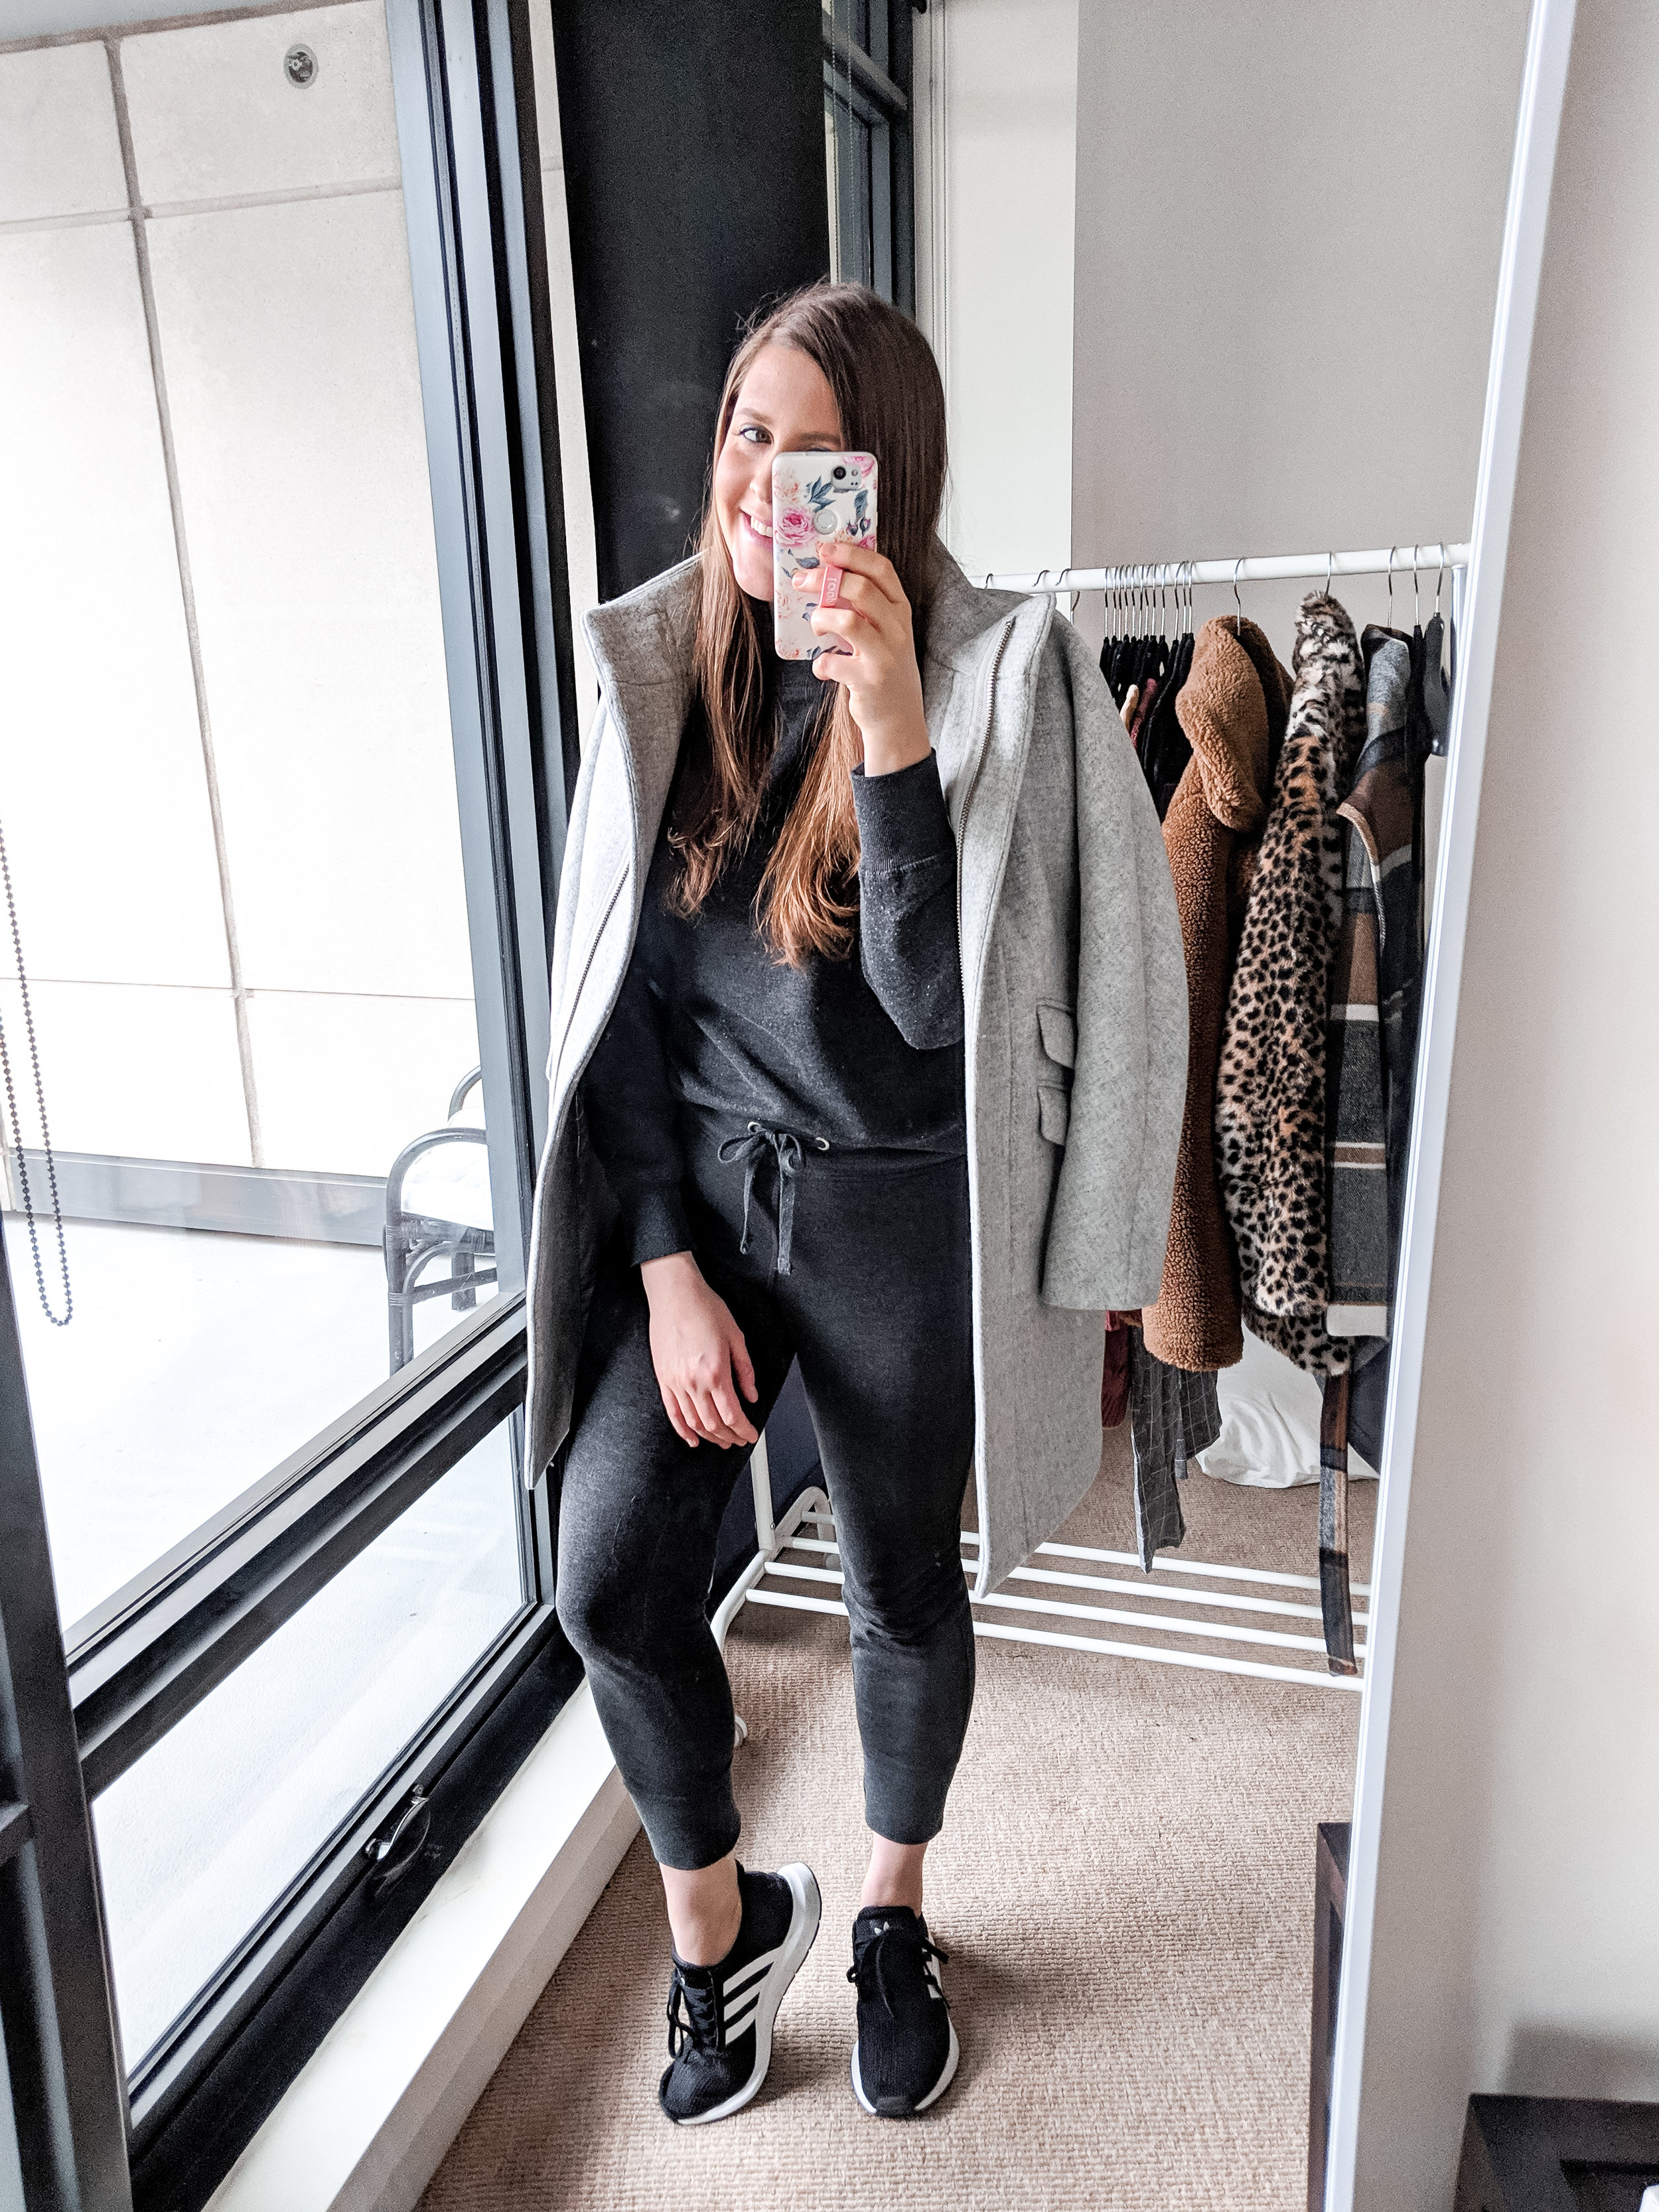 athleisure outfit matching set top and bottom stylebyjulianne